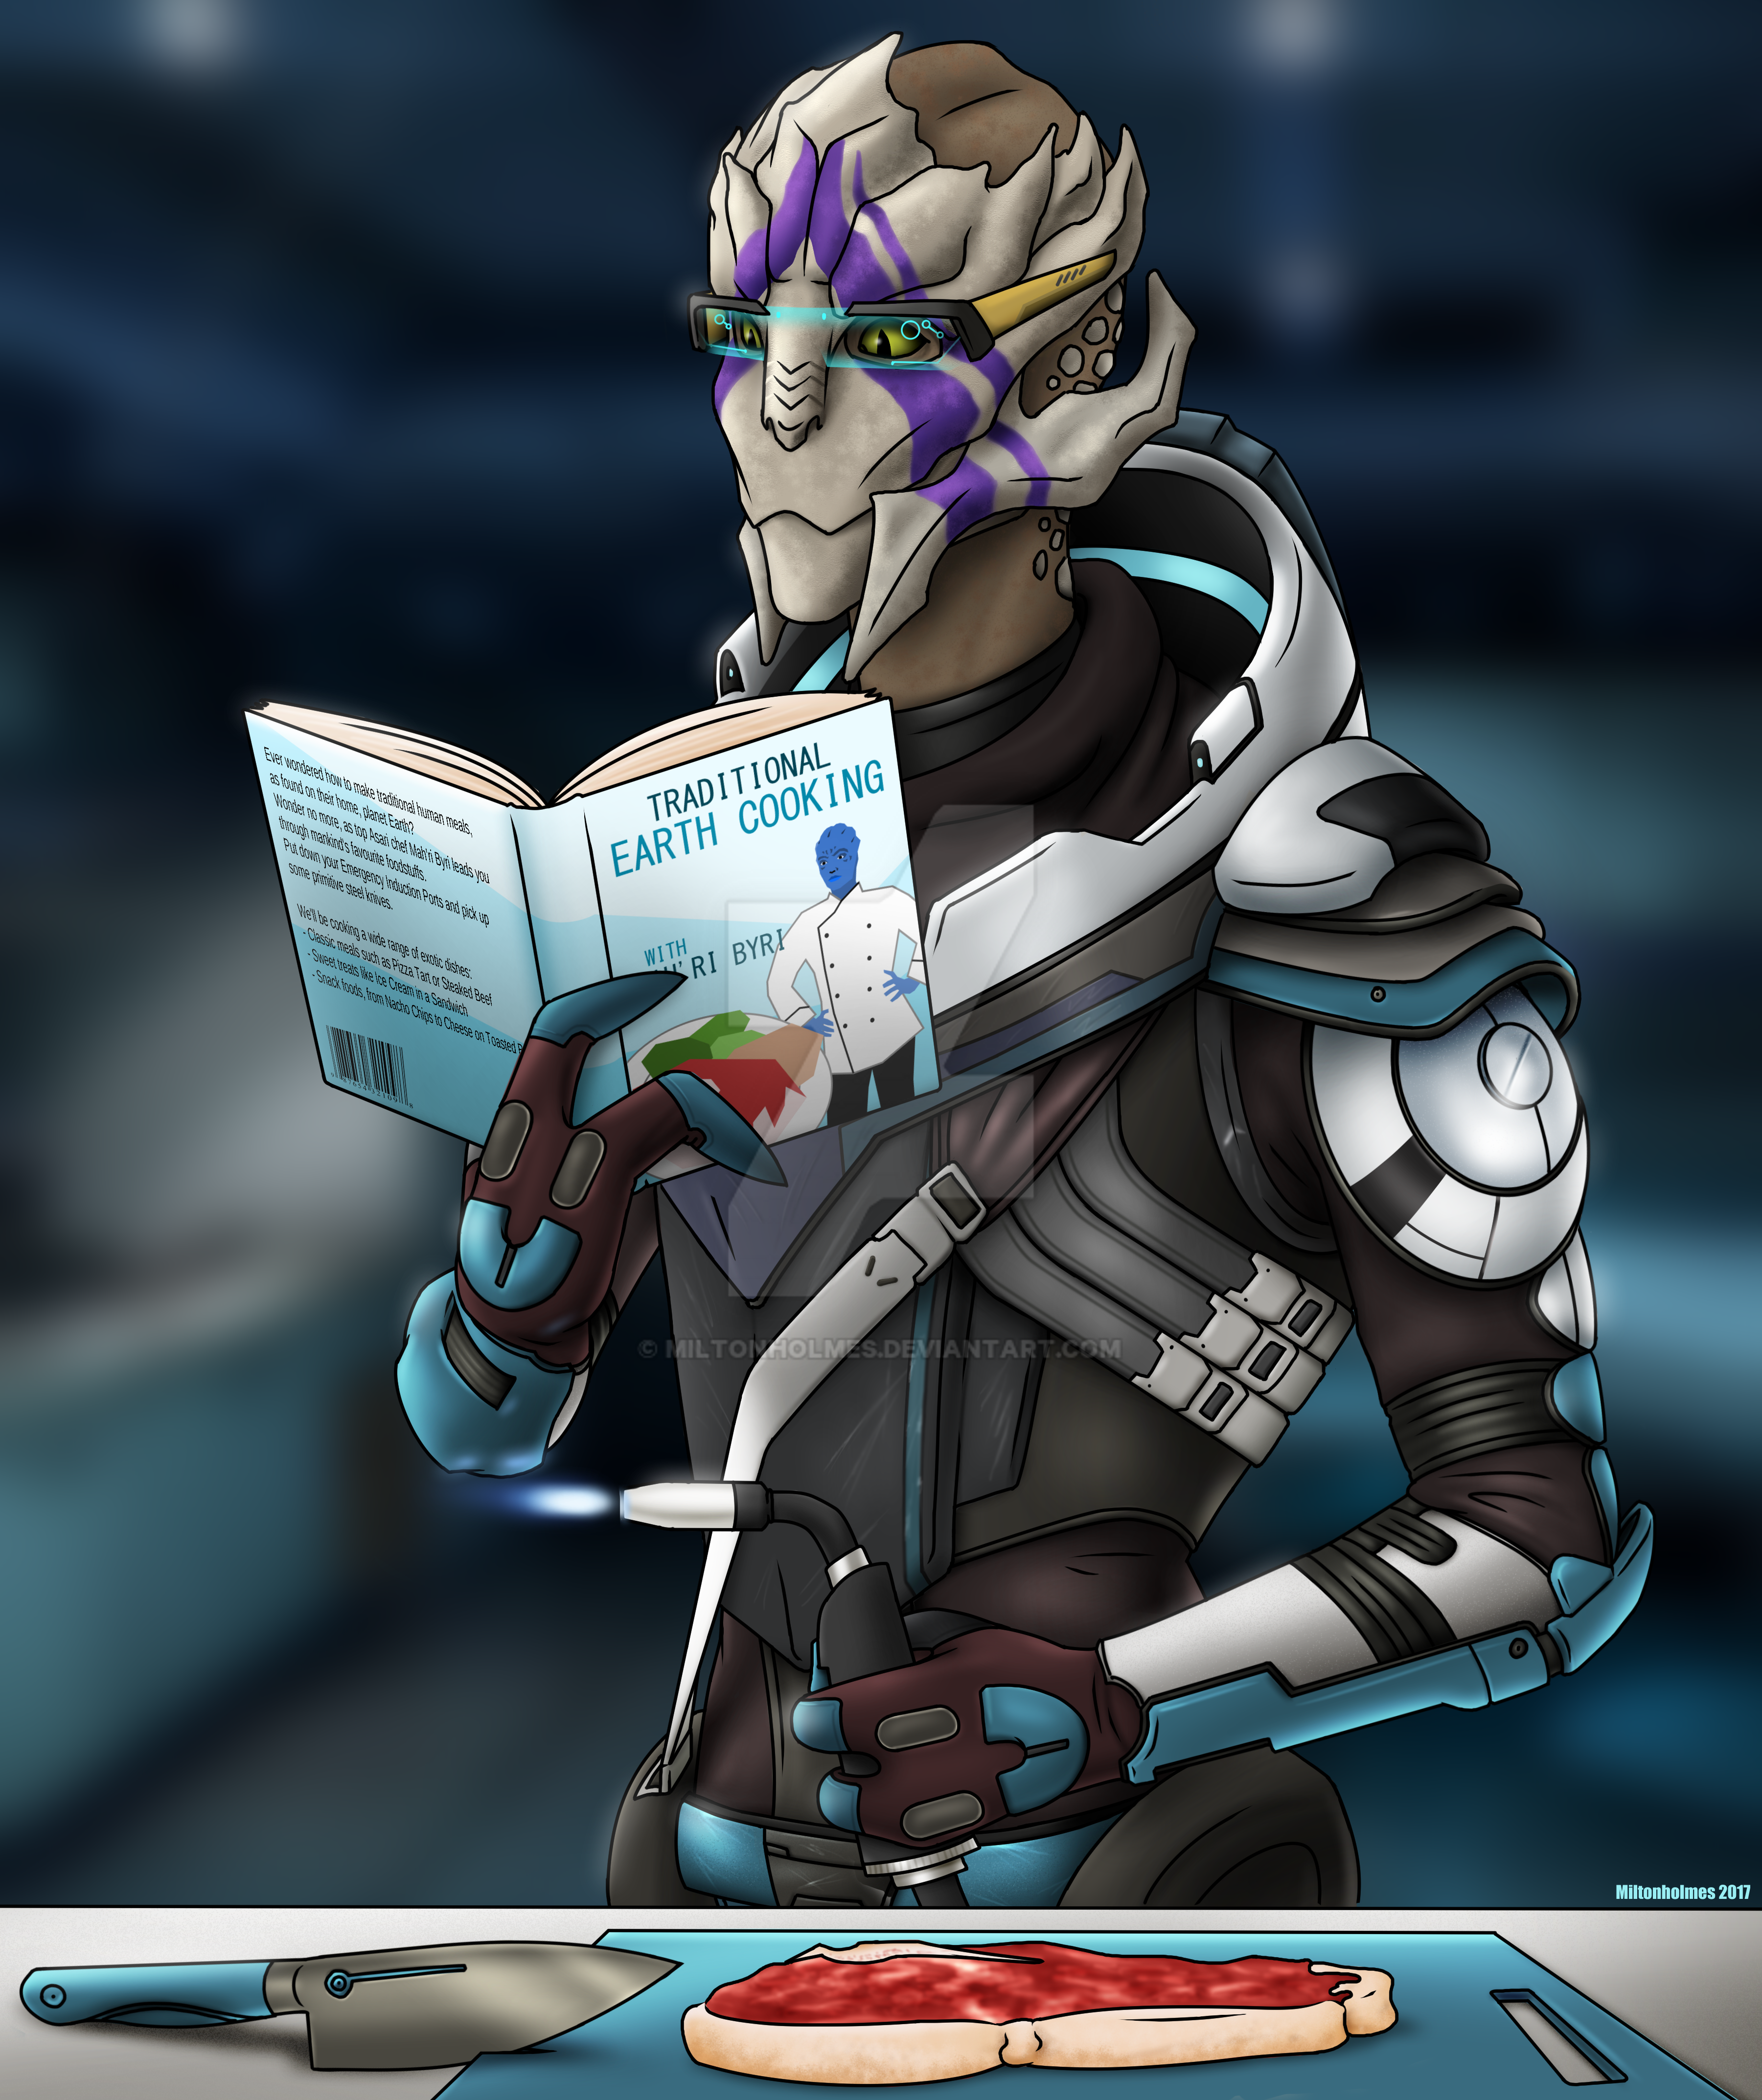 Vetra Tries Cooking by Miltonholmes